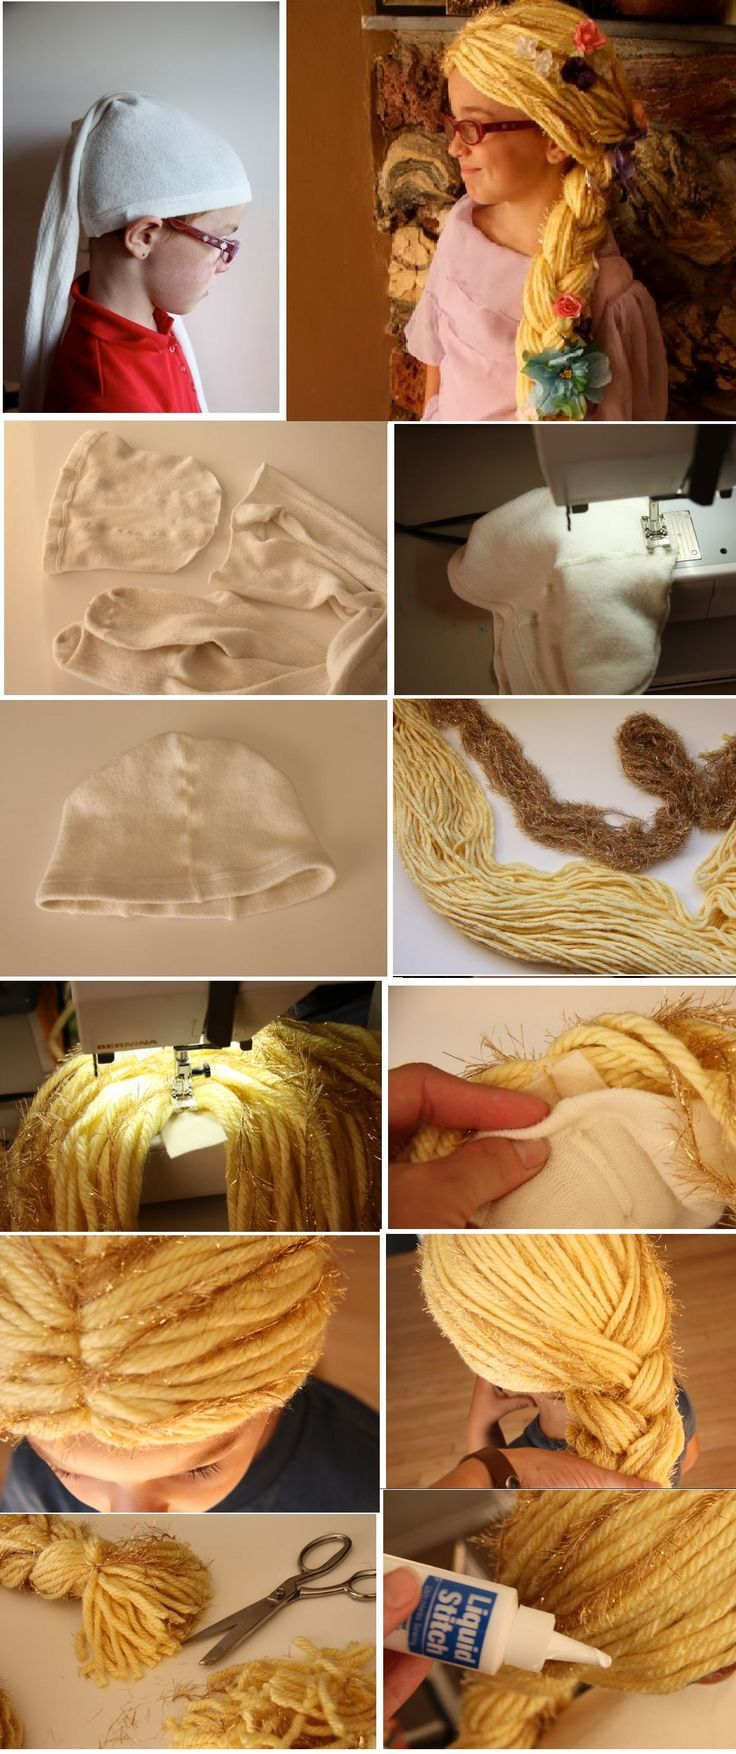 Make your own Rapunzel wig.